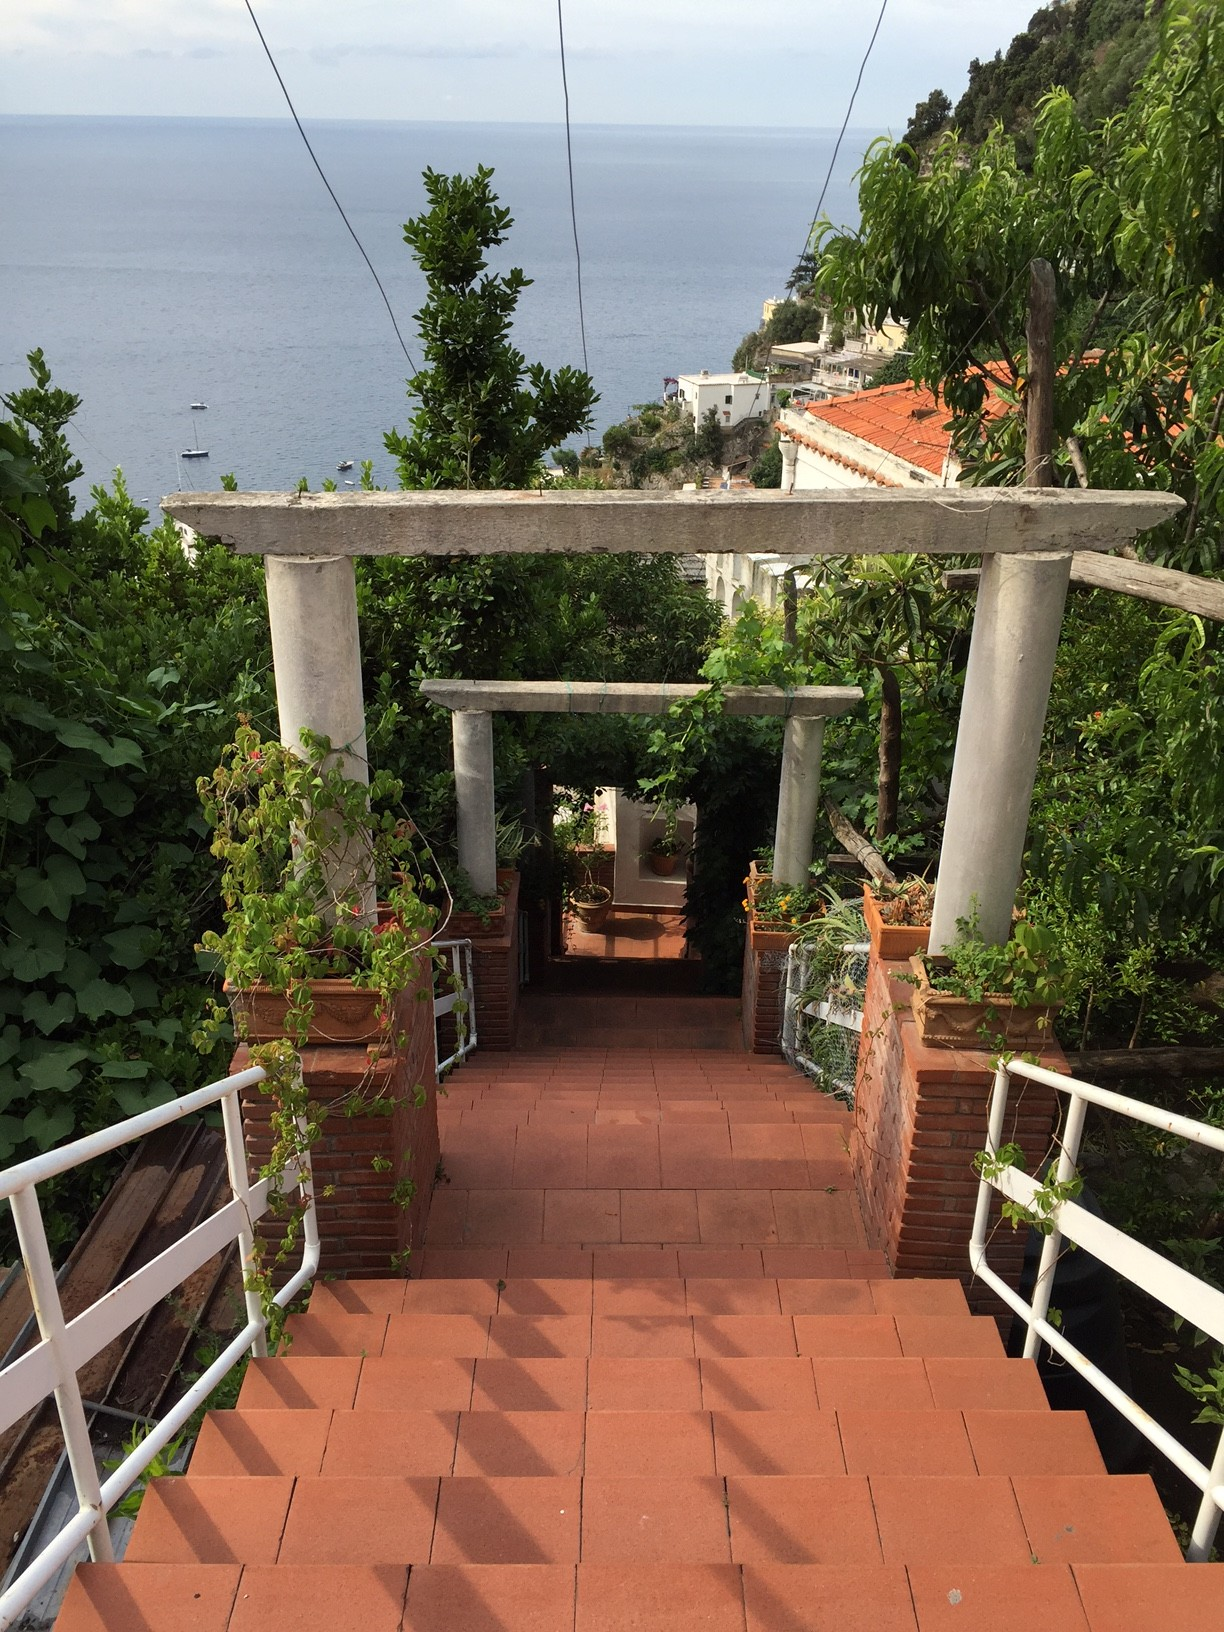 My Fabulous Vacation to Italy Paradise Awaits in Positano  A Boomers Life After 50A Boomers